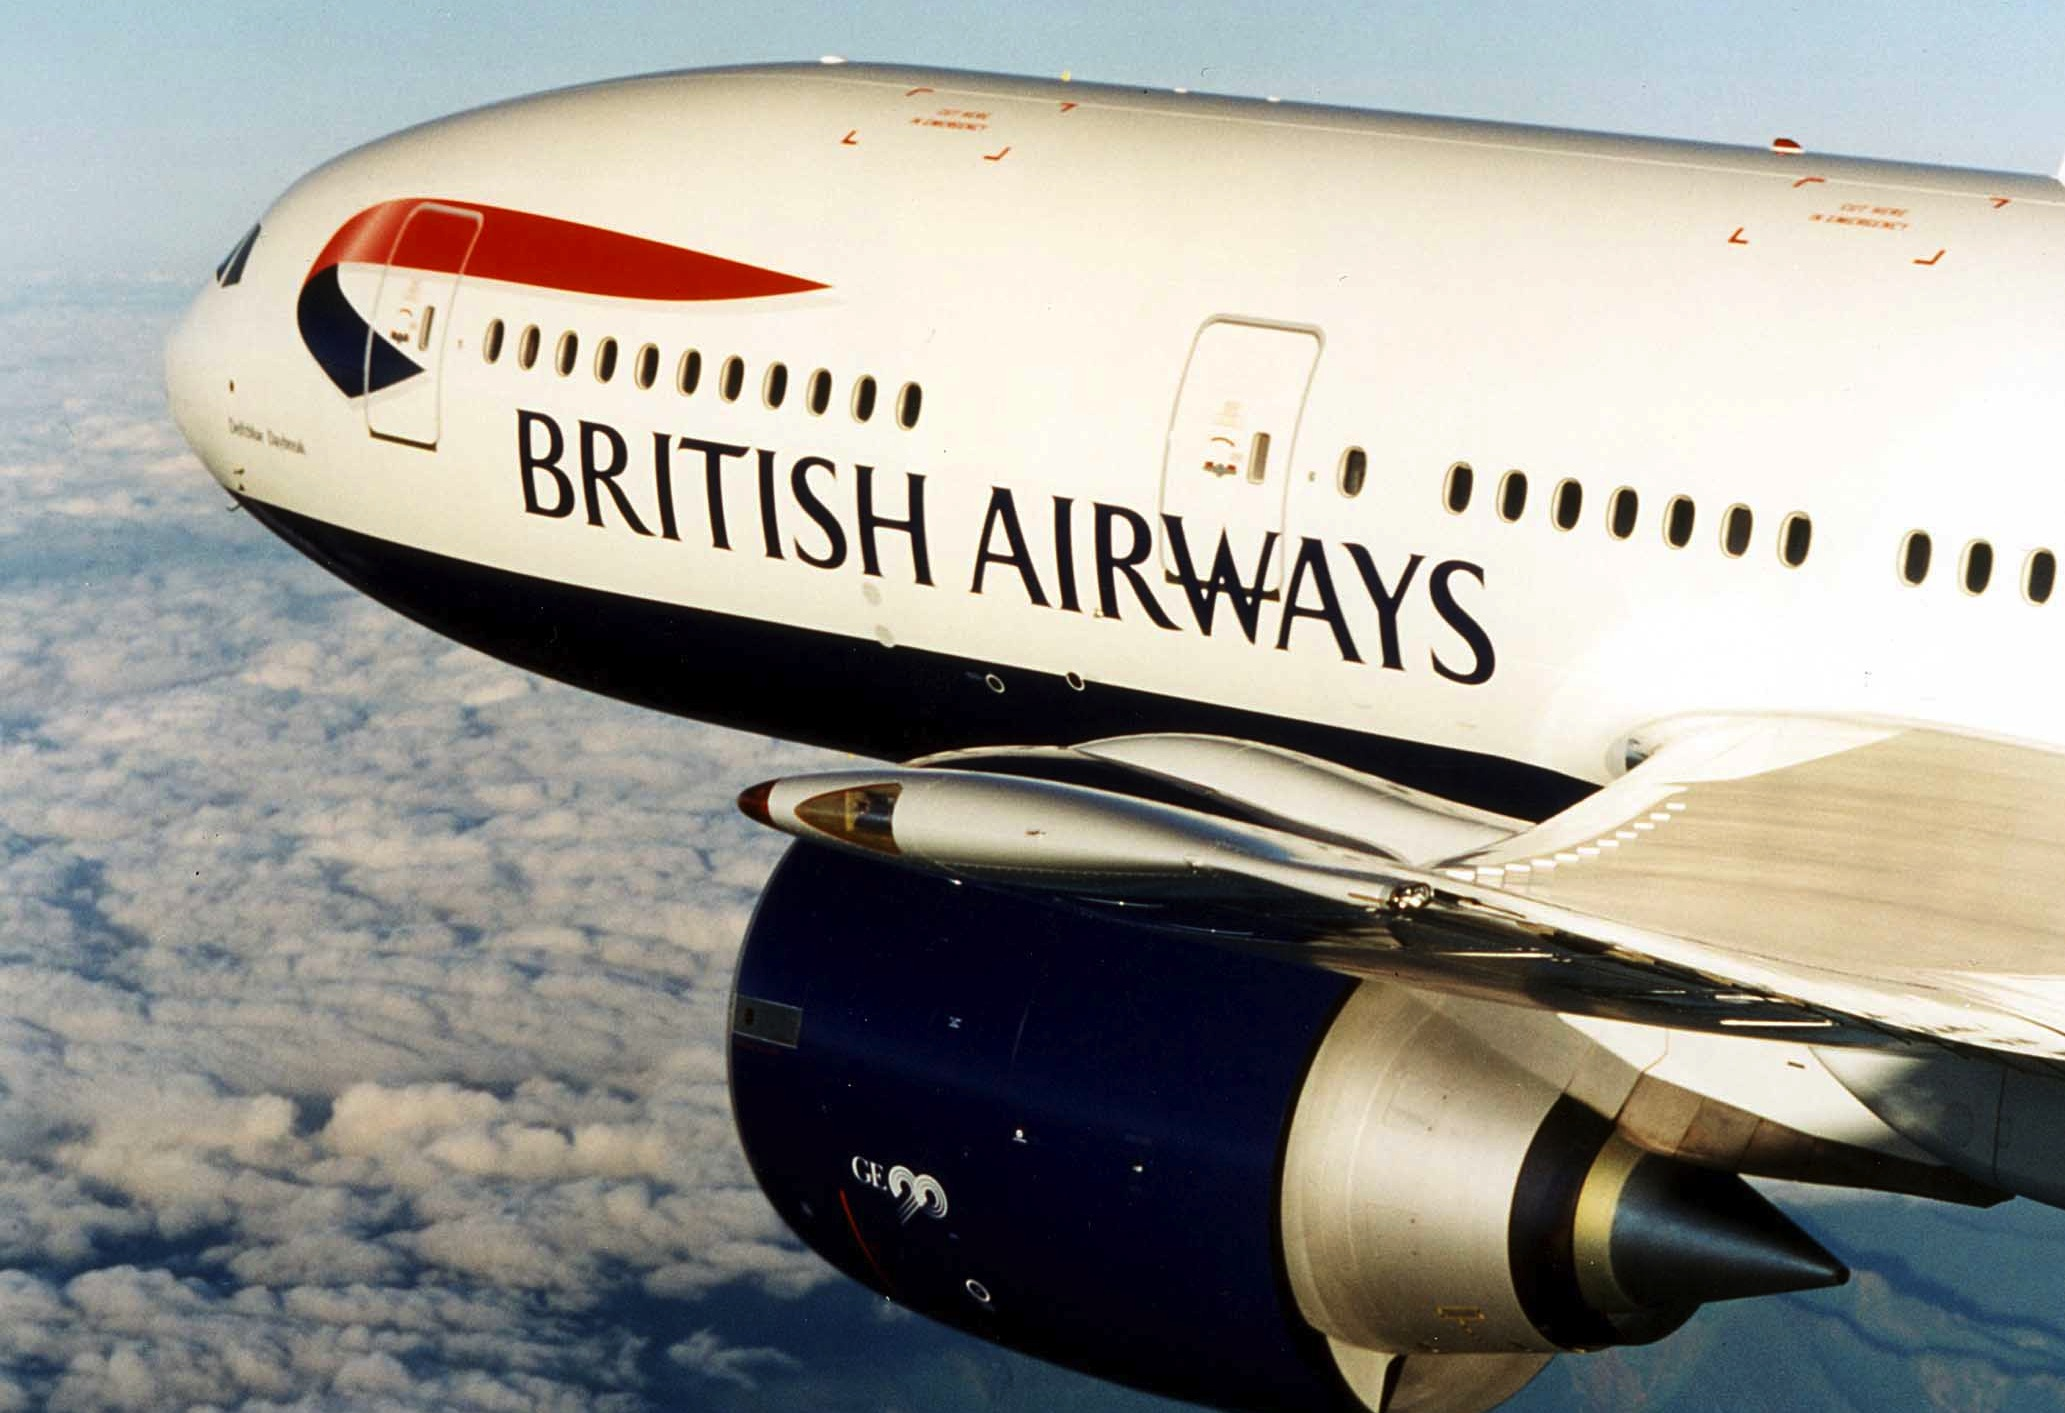 british airways coursework Coursework:strategic analysis report of british airways order description report on british airways very quickly: you will need to prepare a 4000 words report (+/- 10%) where you don't have to repeat the theories, just use them and reference them in order to provide related answers to the 4 questions.